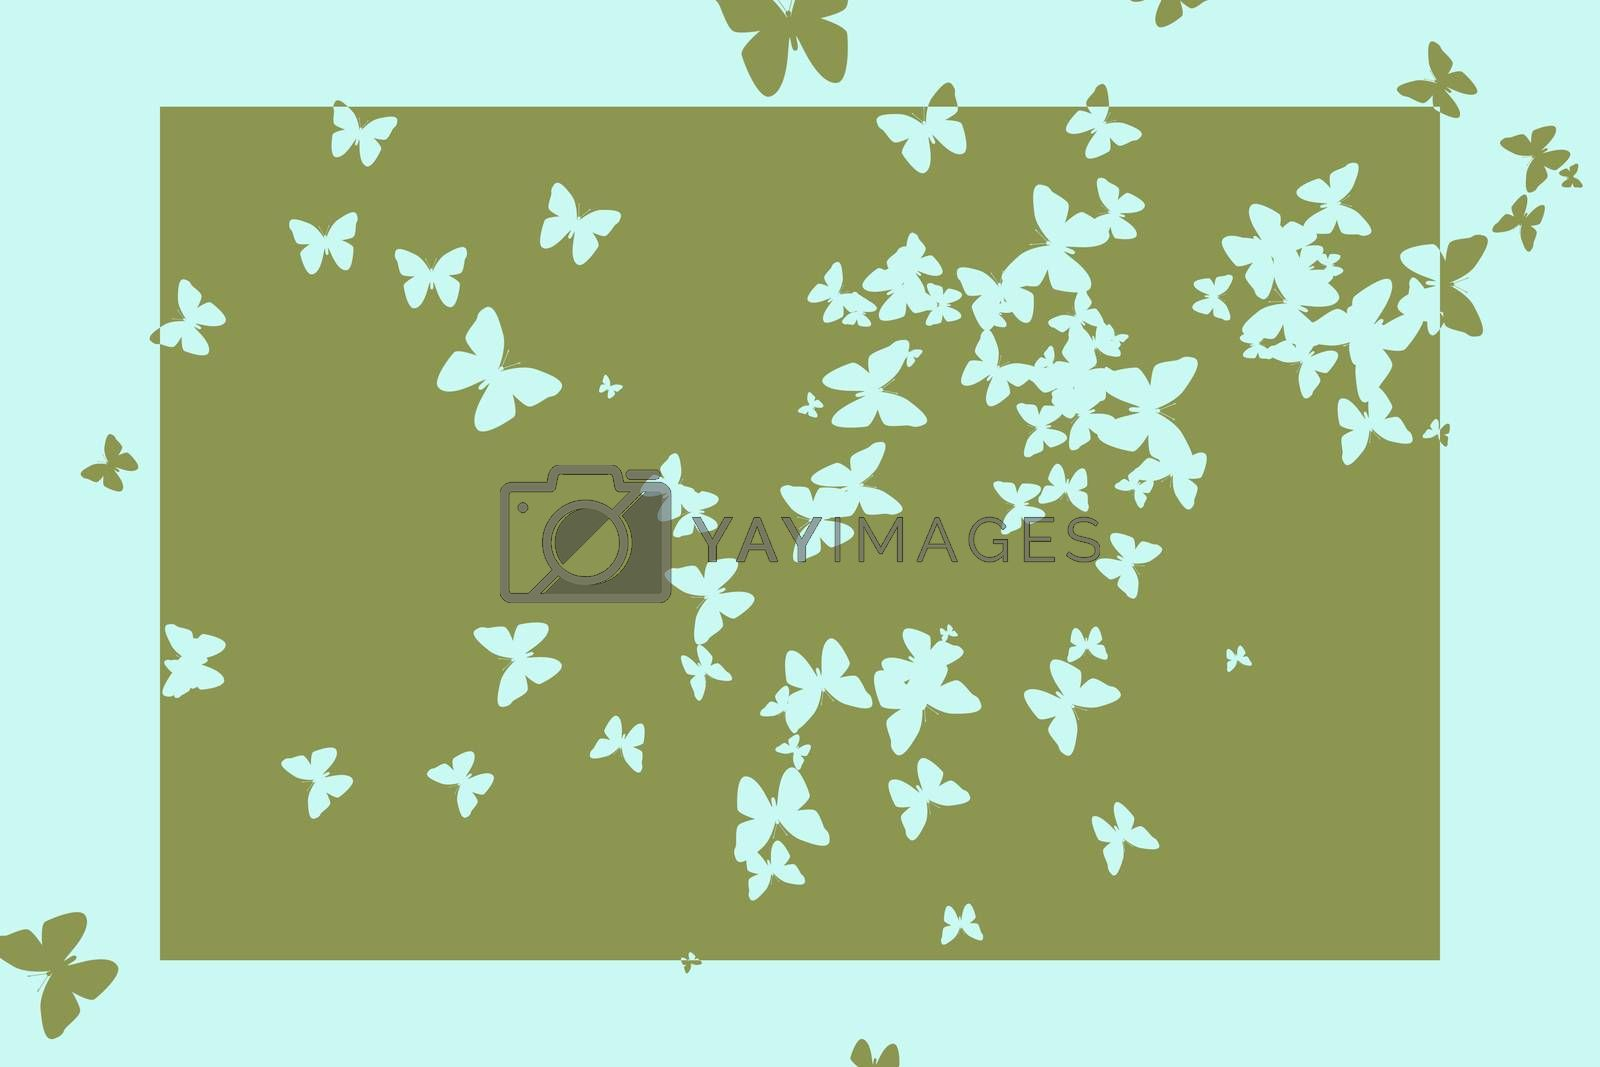 Royalty free image of Stencil butterfly pattern design in green and blue by Wavebreakmedia